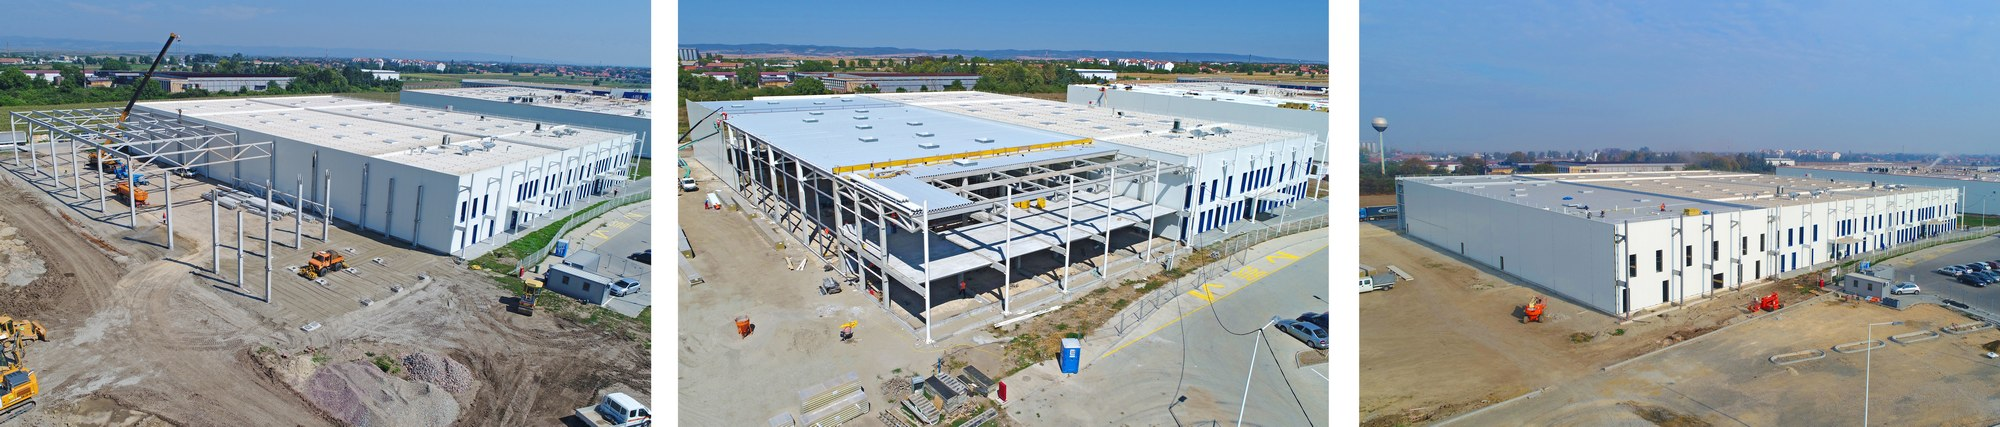 'HUTCHINSON' PROJECT, Ruma 22500m² I 2015- 35m span main trusses I pre-strested trusses, tt flor slabs and purlins